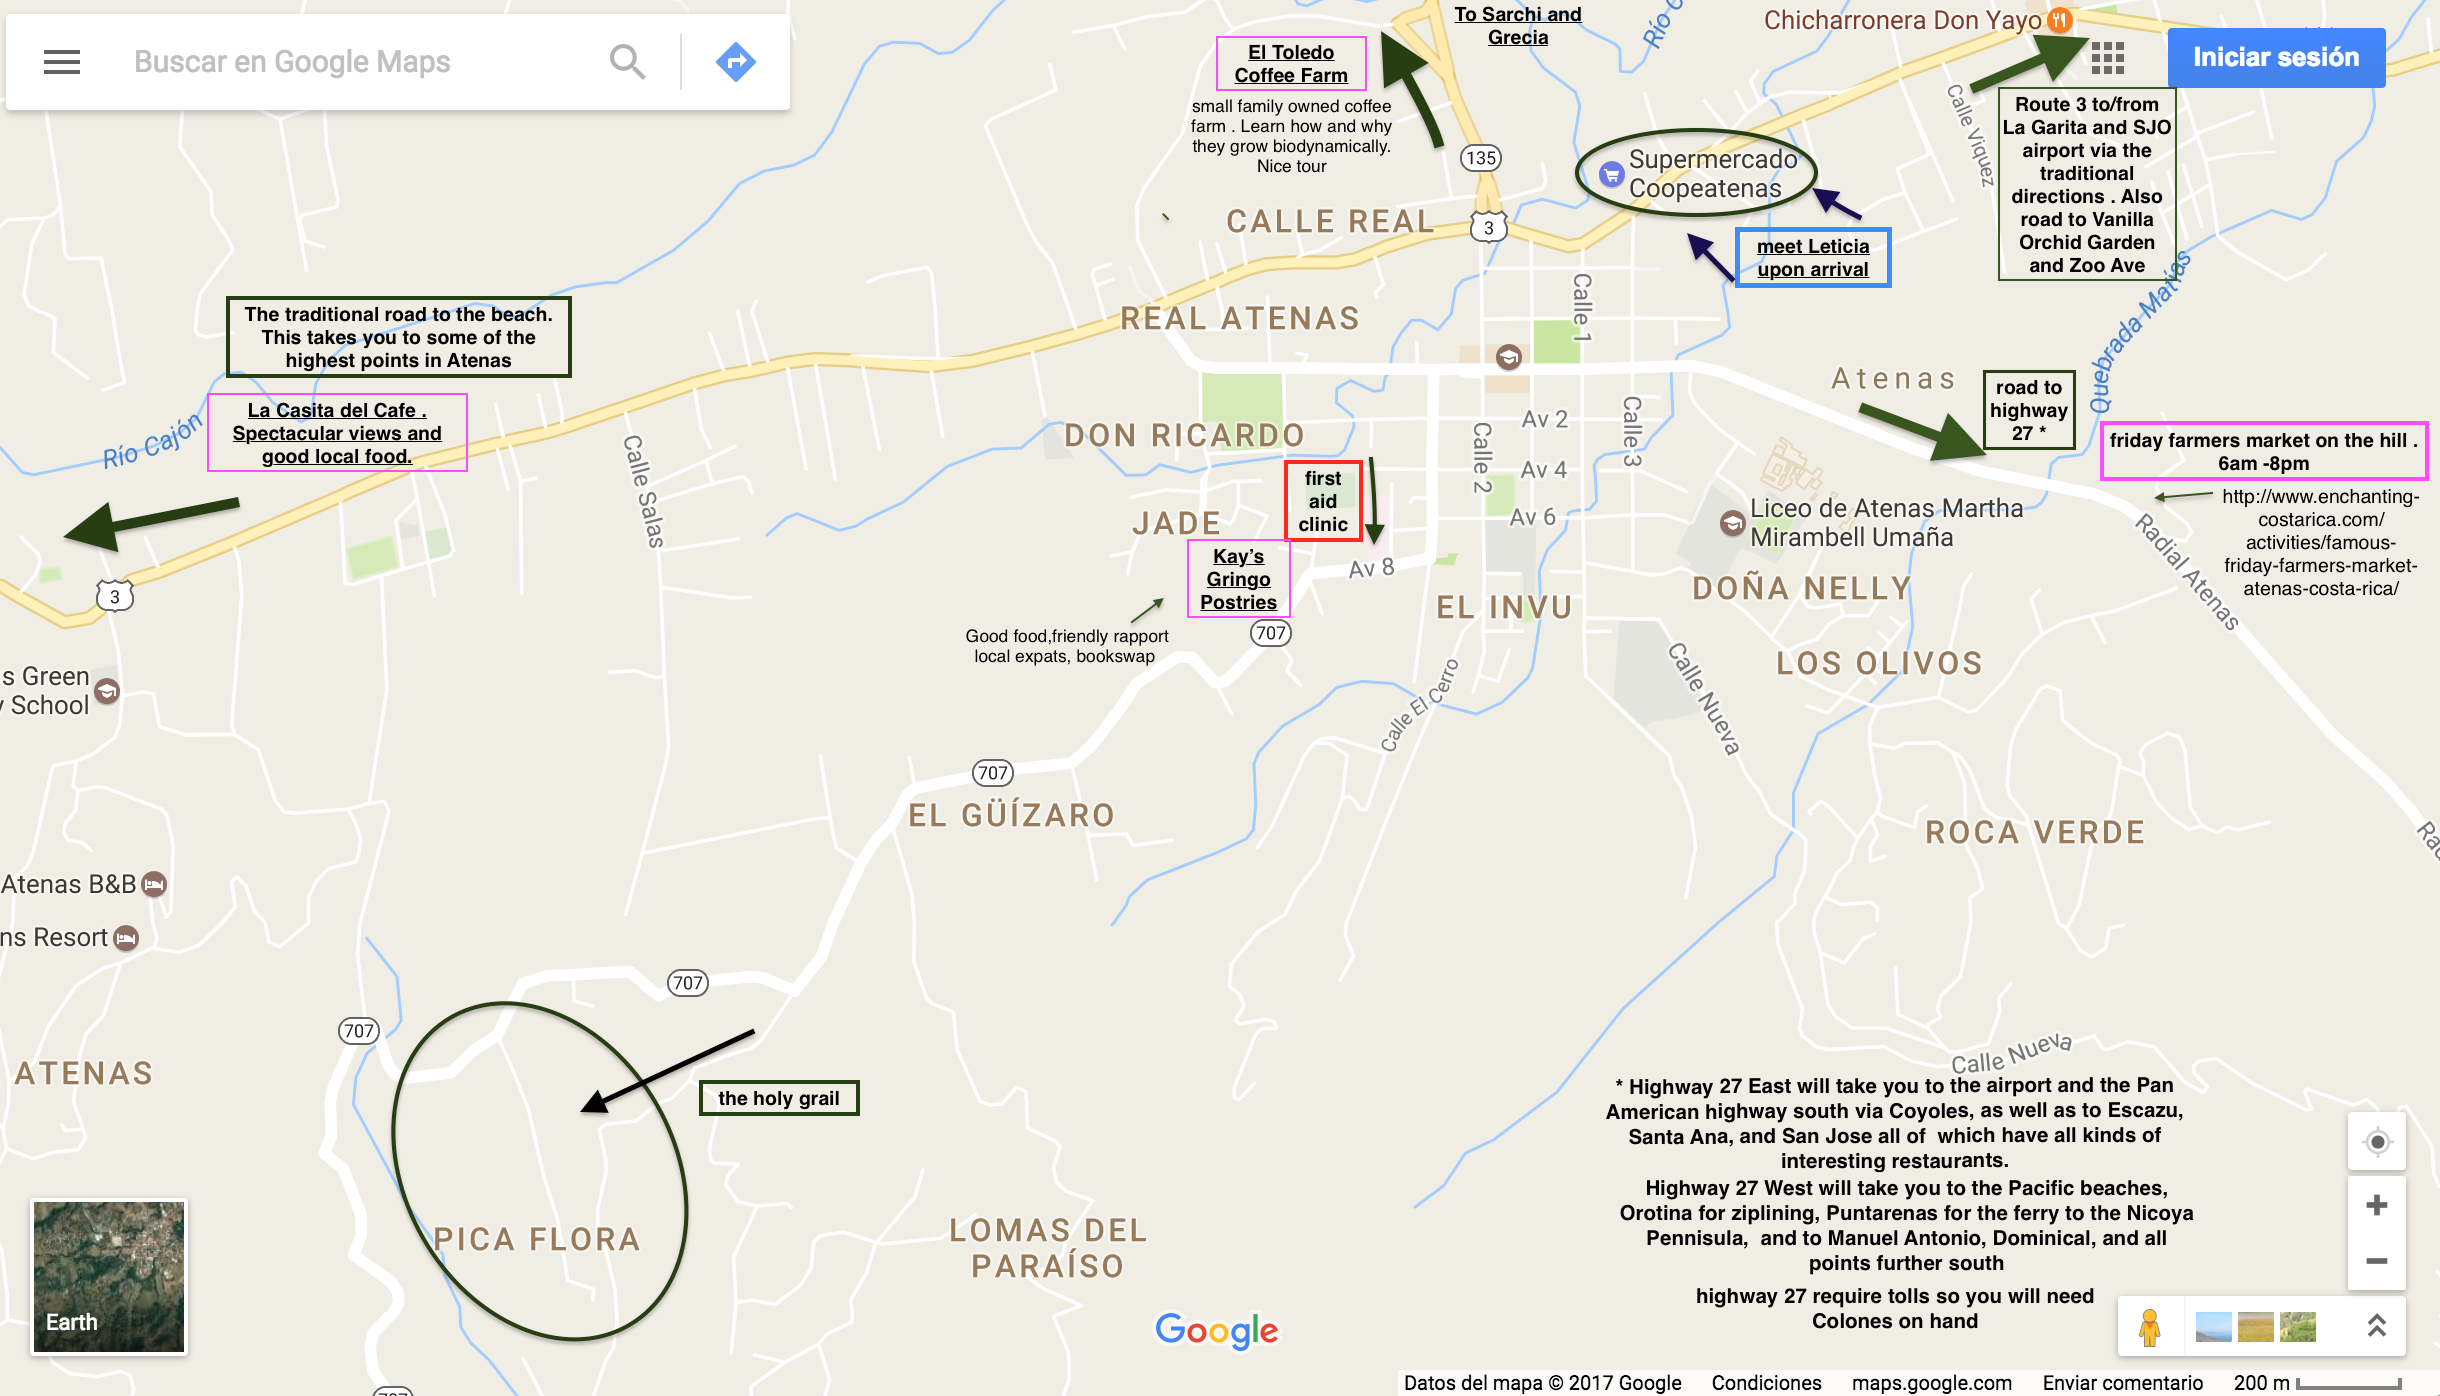 google map of Atenas